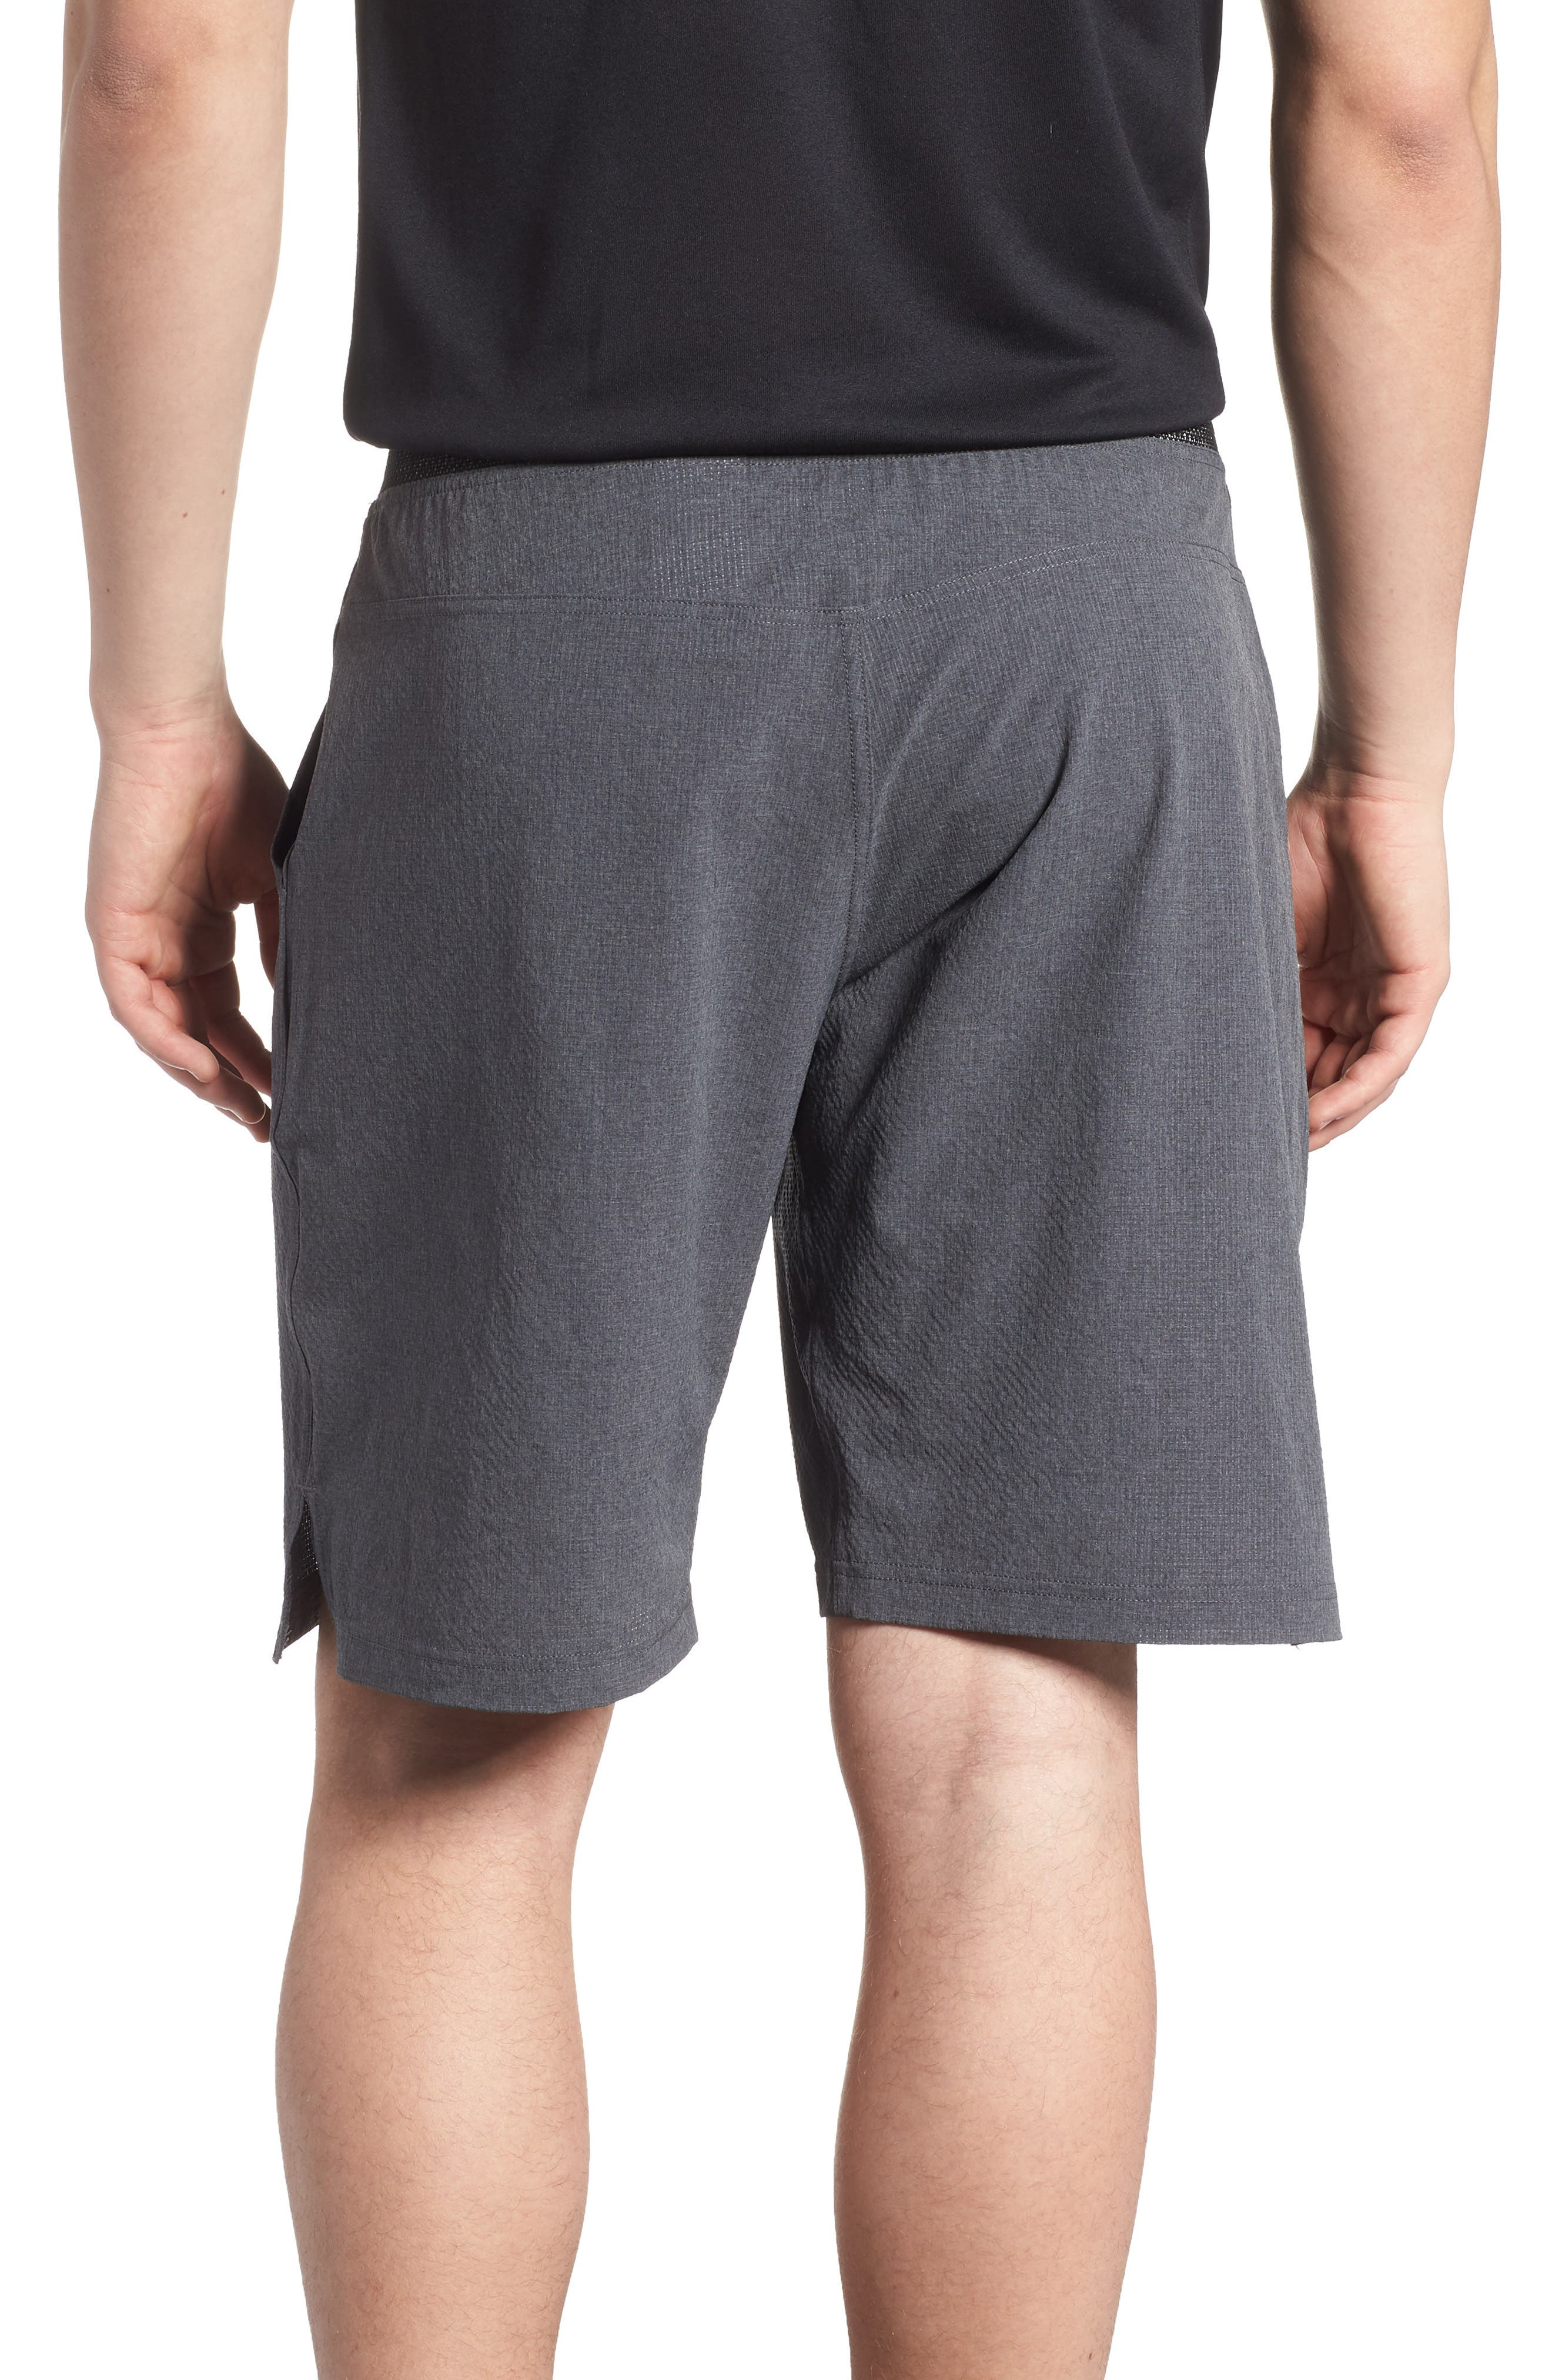 Epic Knit Shorts,                             Alternate thumbnail 2, color,                             Dark Grey Heather